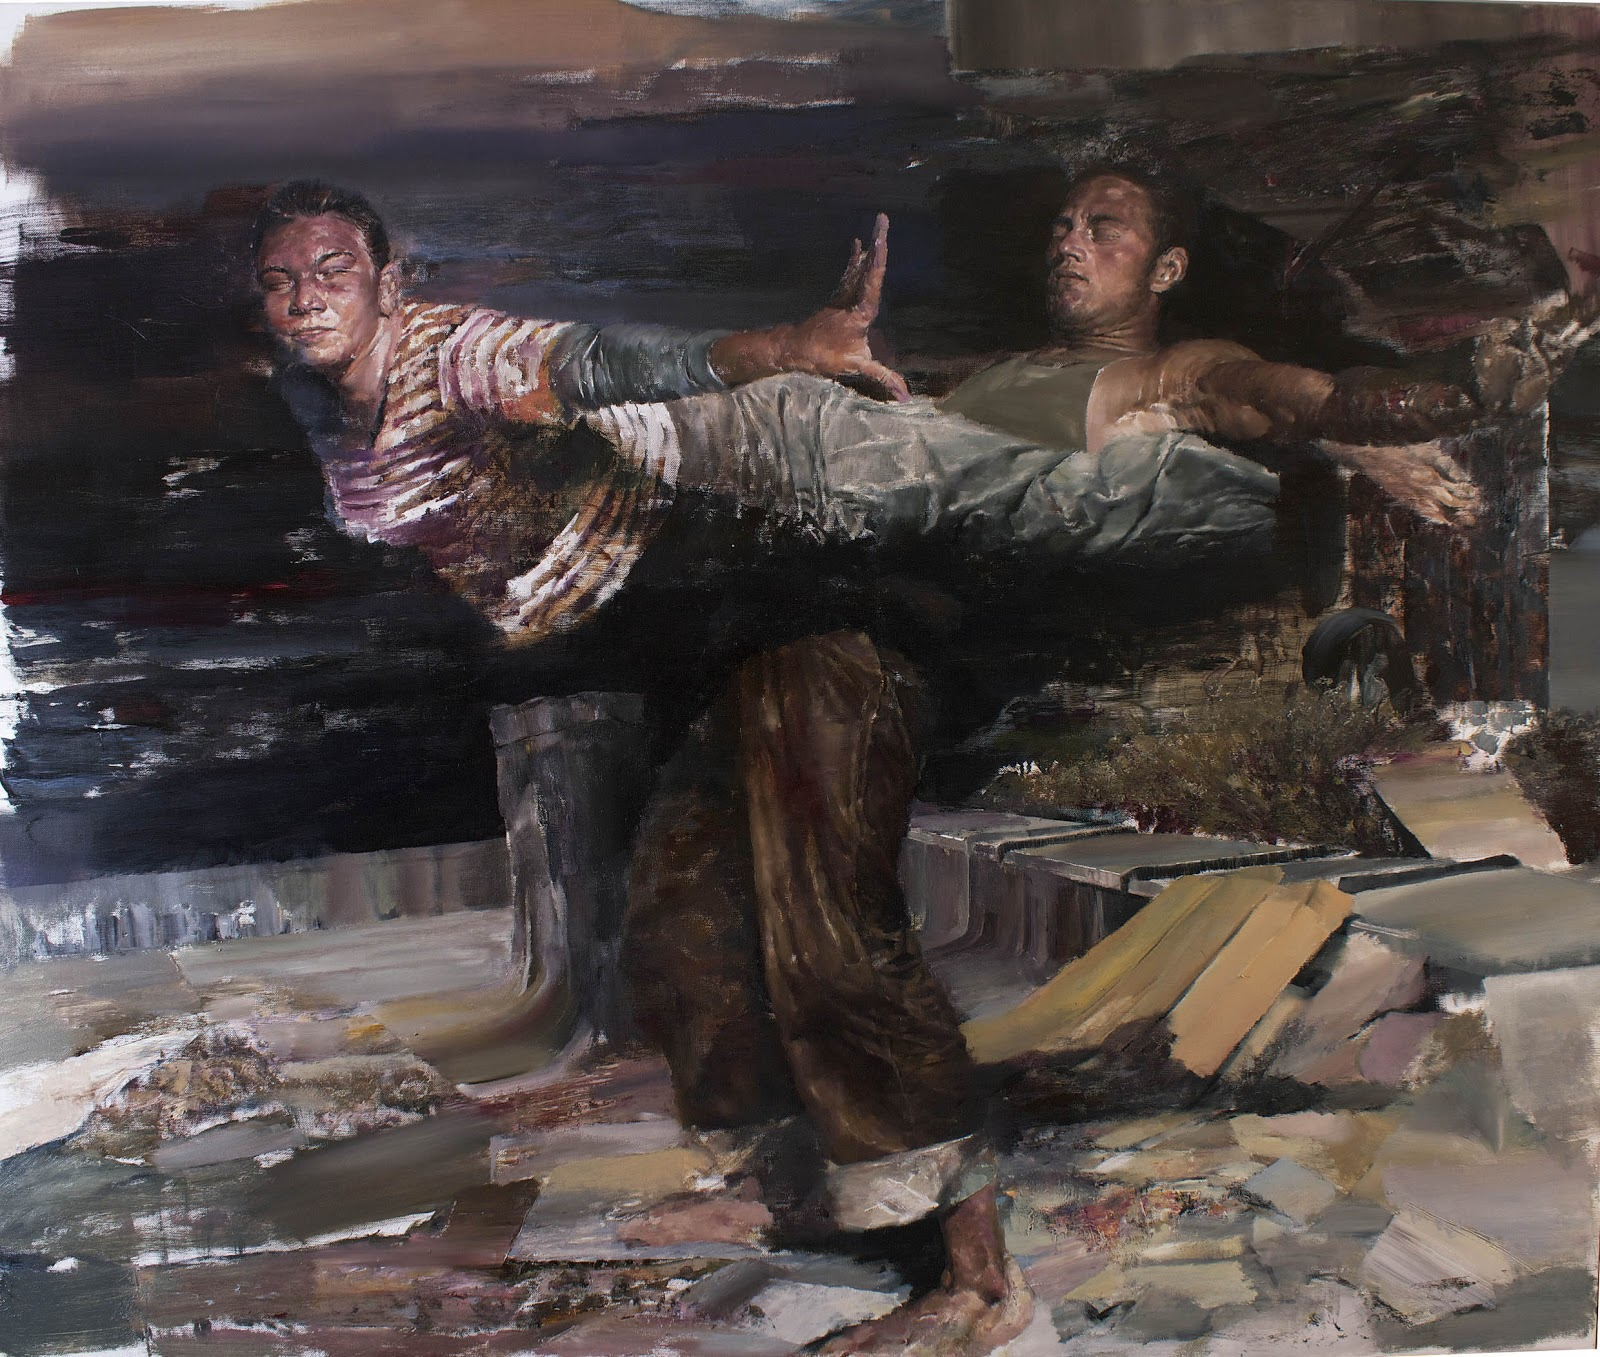 "Dan Voinea ""A Momentary Rise of Reason"" @ Beers.Lambert Contemporary, London: Performance 150X180cm'.jpg"